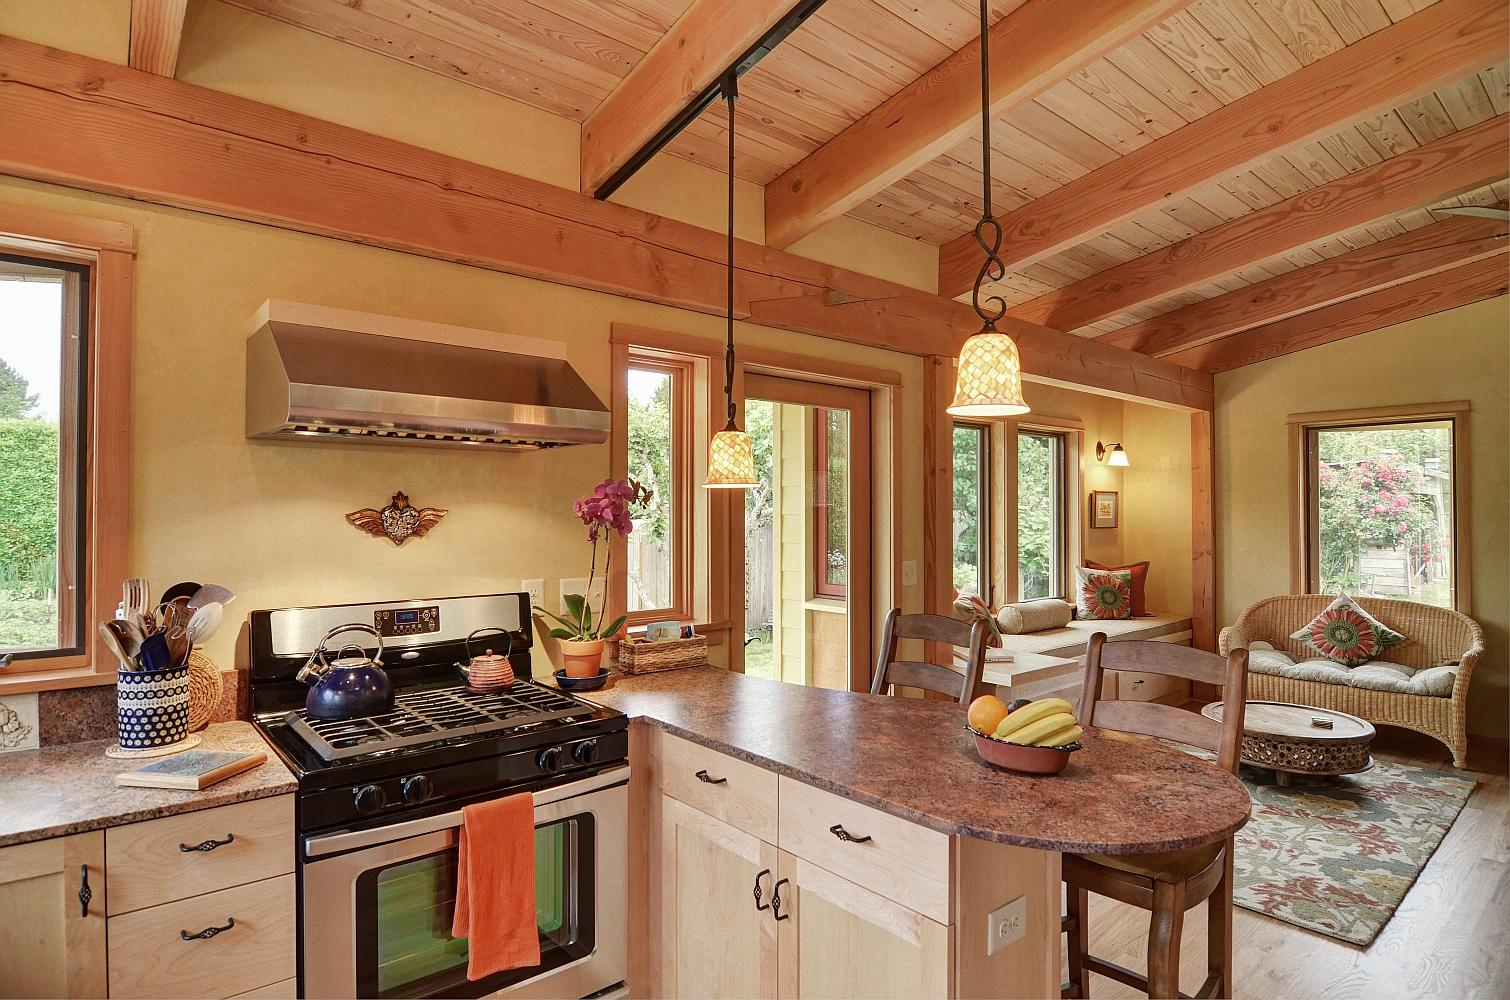 Gallery river road house a beautiful timber frame for Small house plans with big kitchens